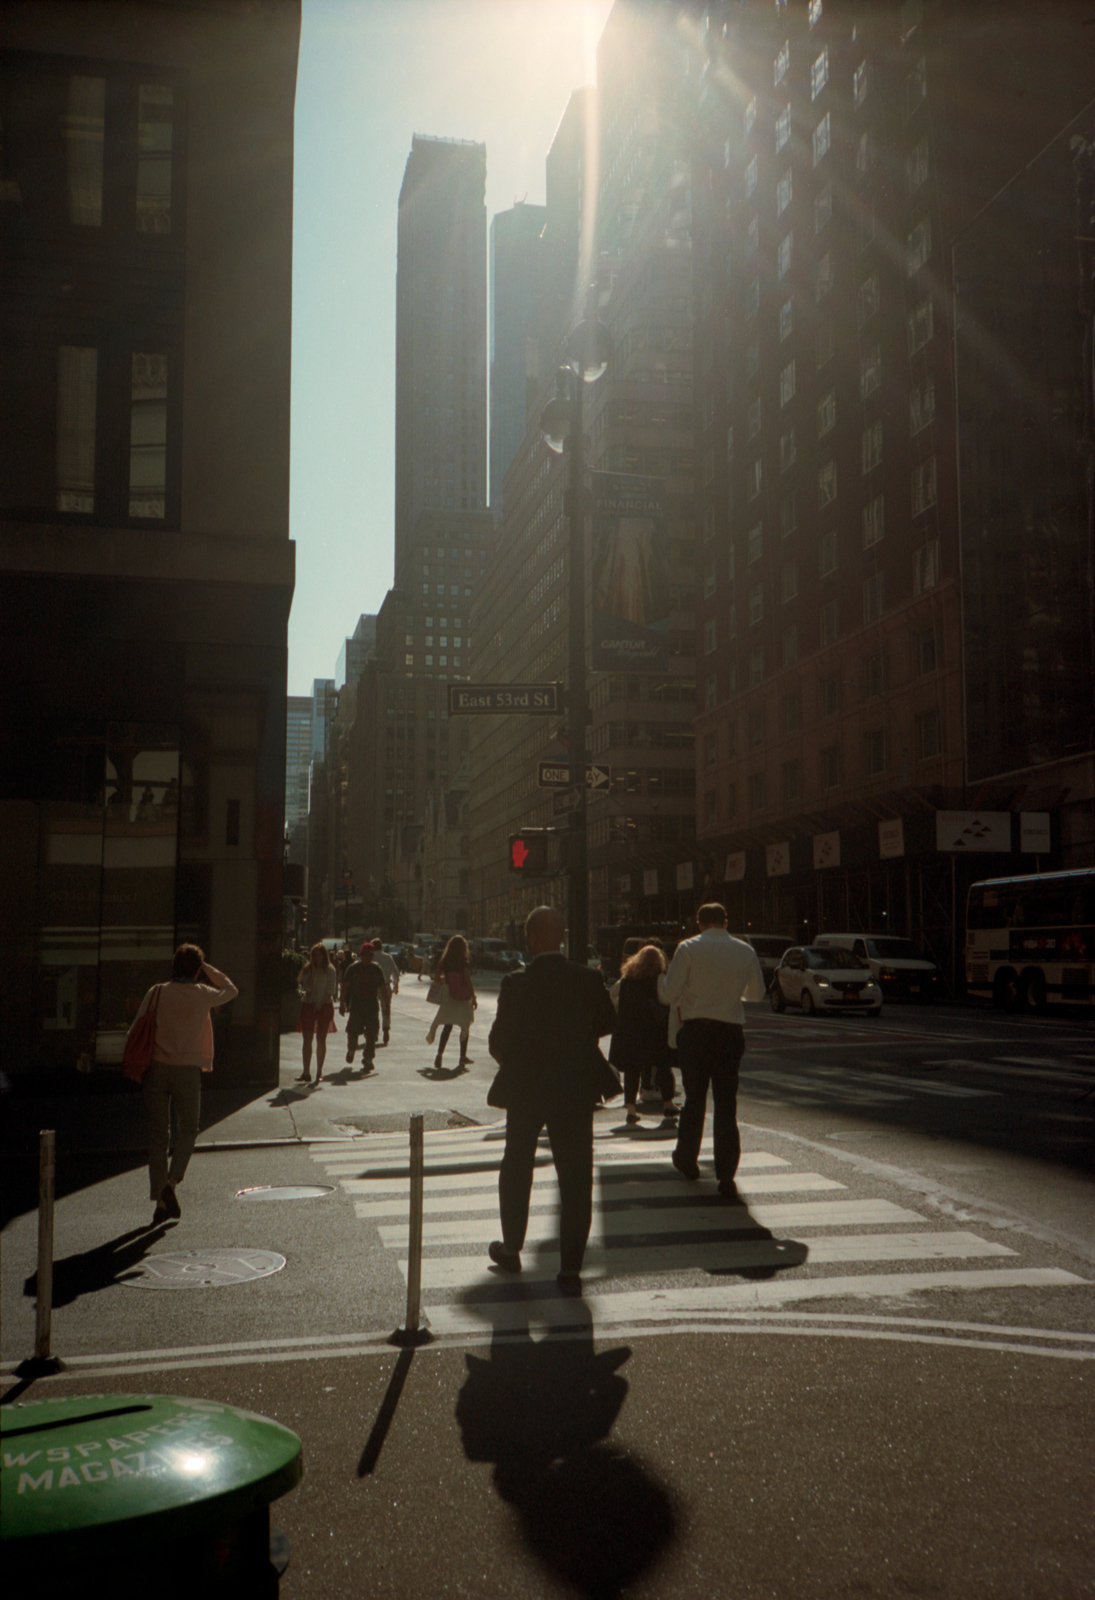 Light Between the rooftops, Madison Avenue, Lonely New York, Photography By Ioannis Koussertari.